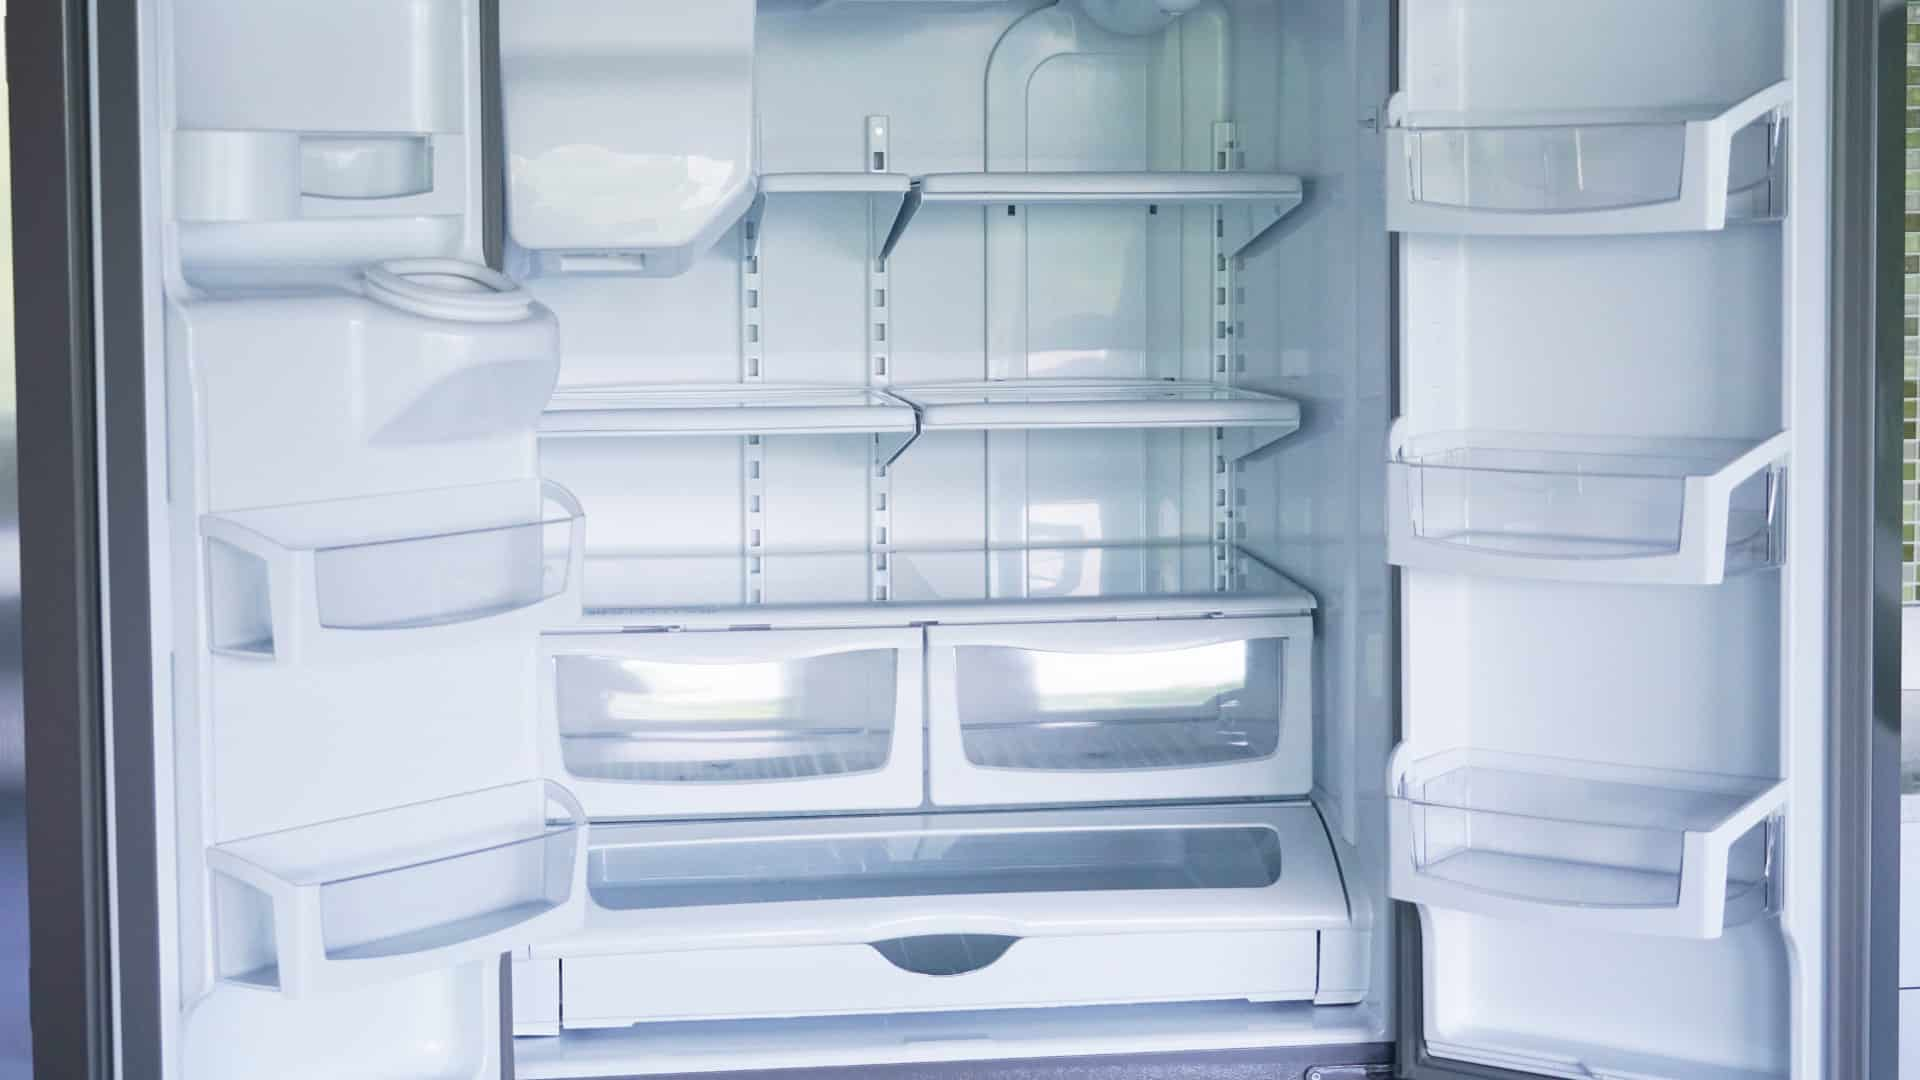 """Featured image for """"Ice Maker Repair for KitchenAid Refrigerator"""""""